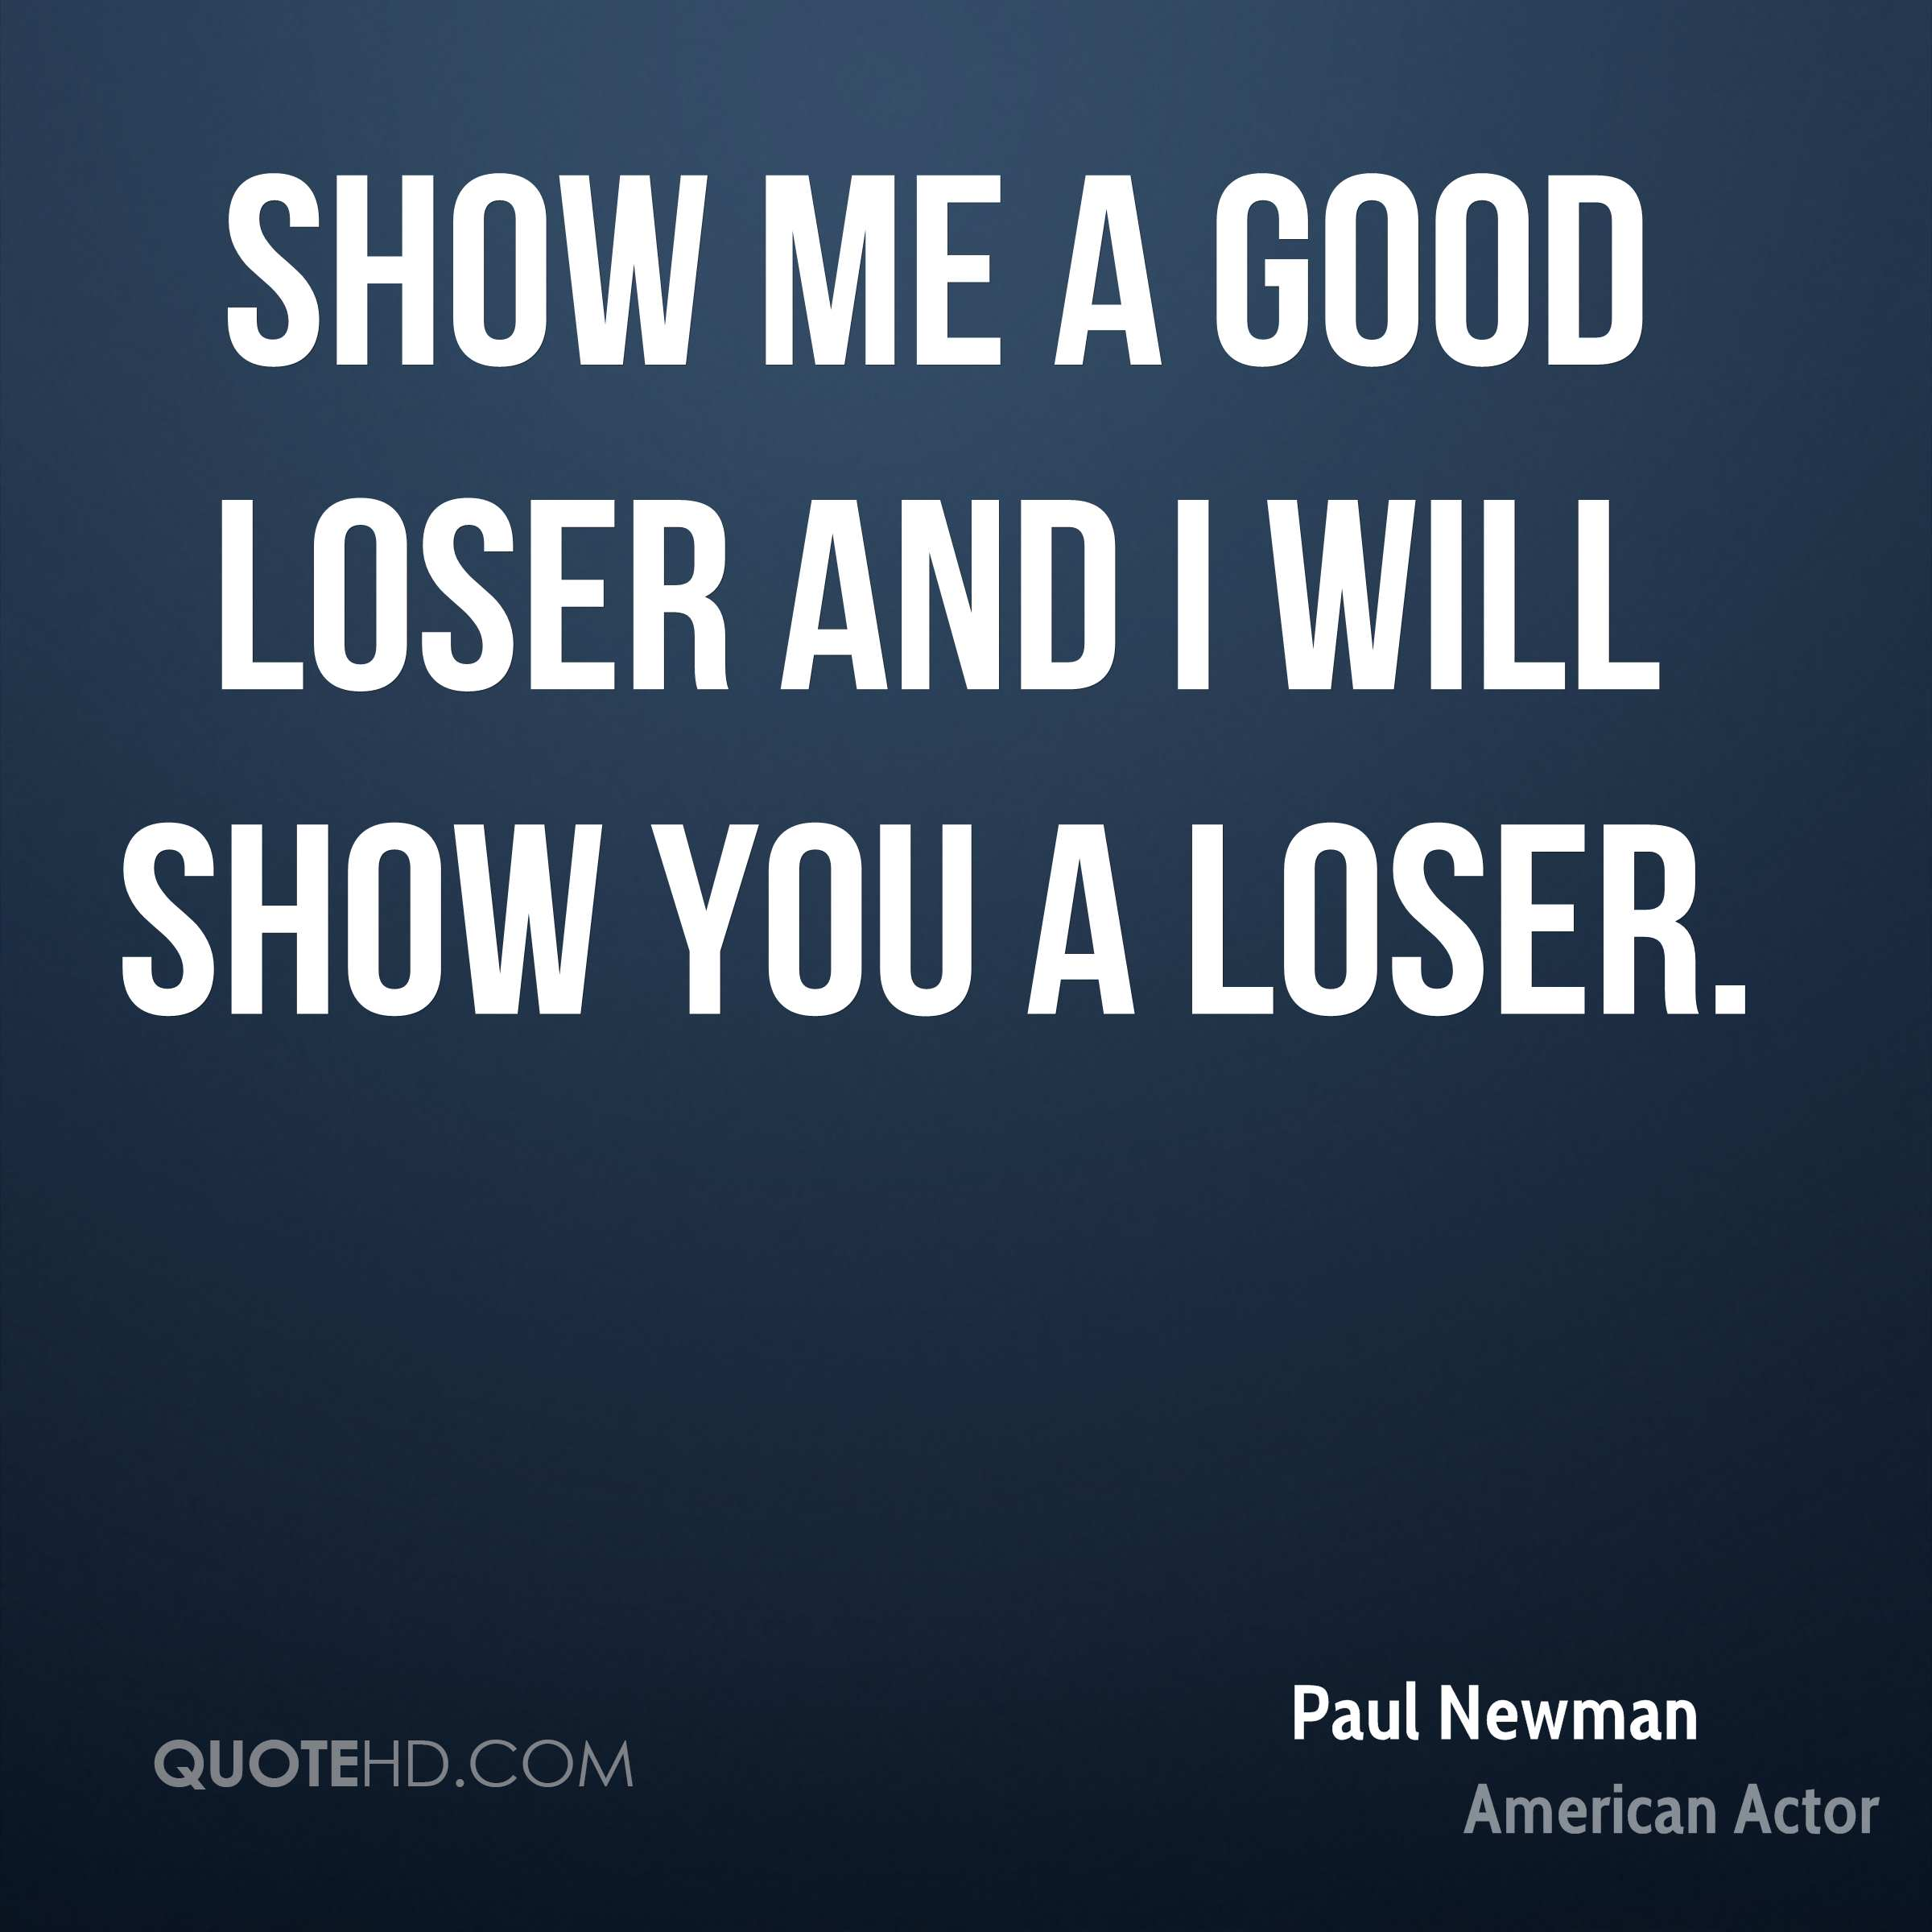 Show me a good loser and I will show you a loser.